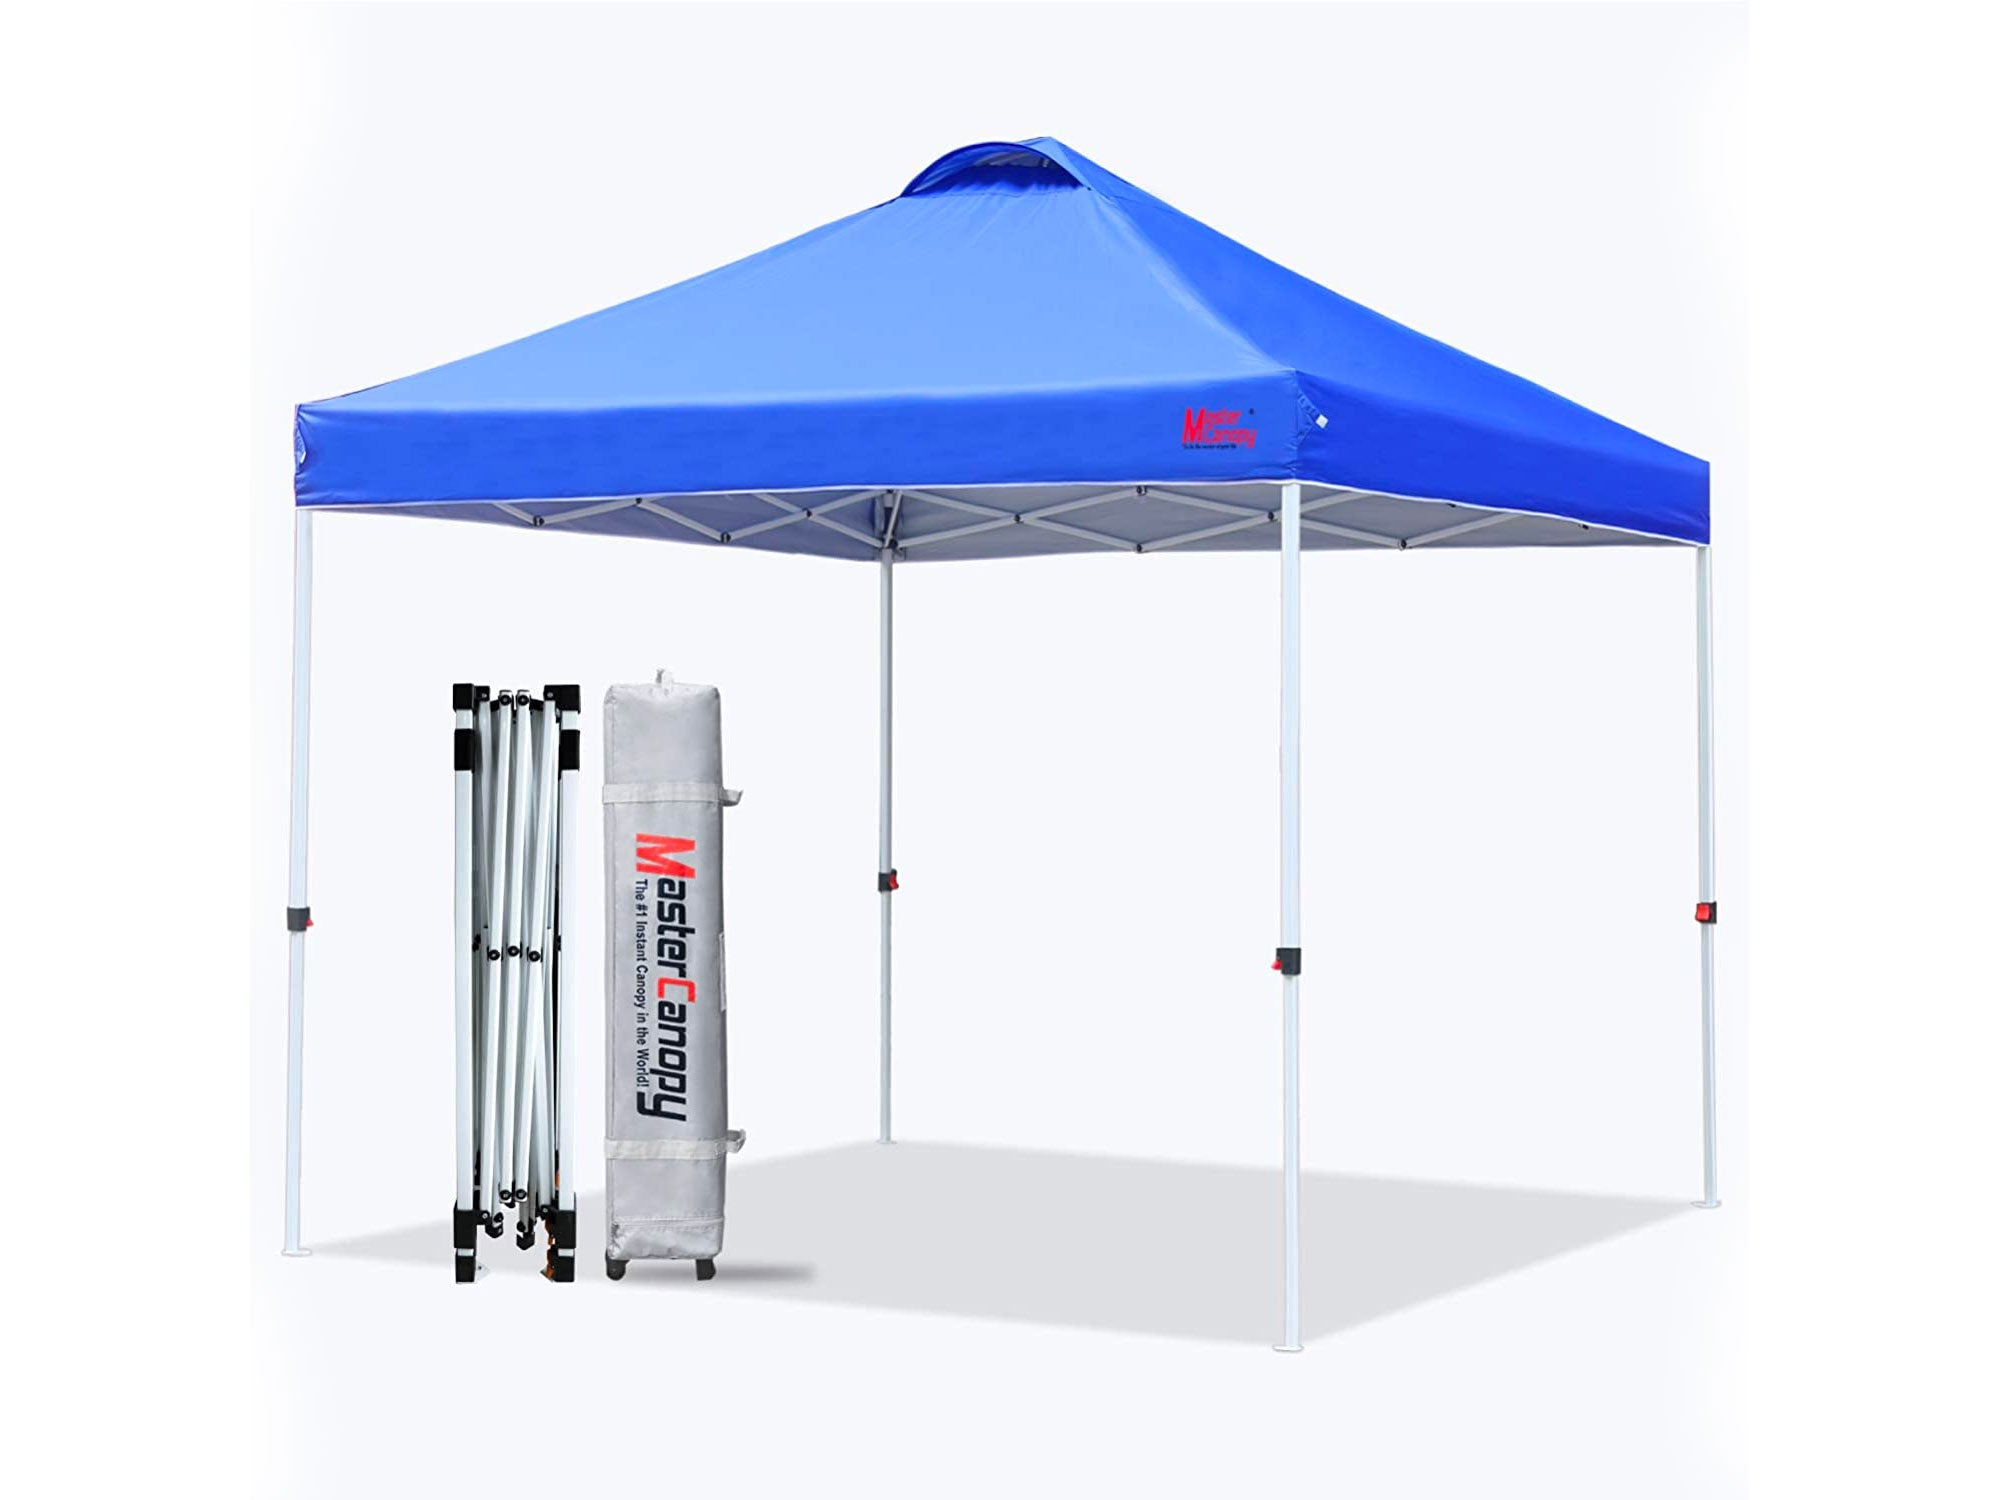 MASTERCANOPY Pop-up Canopy Tent Commercial Instant Canopy with Wheeled Bag,Canopy Sandbags x4,Tent Stakes x 4 (10'x10' Blue)